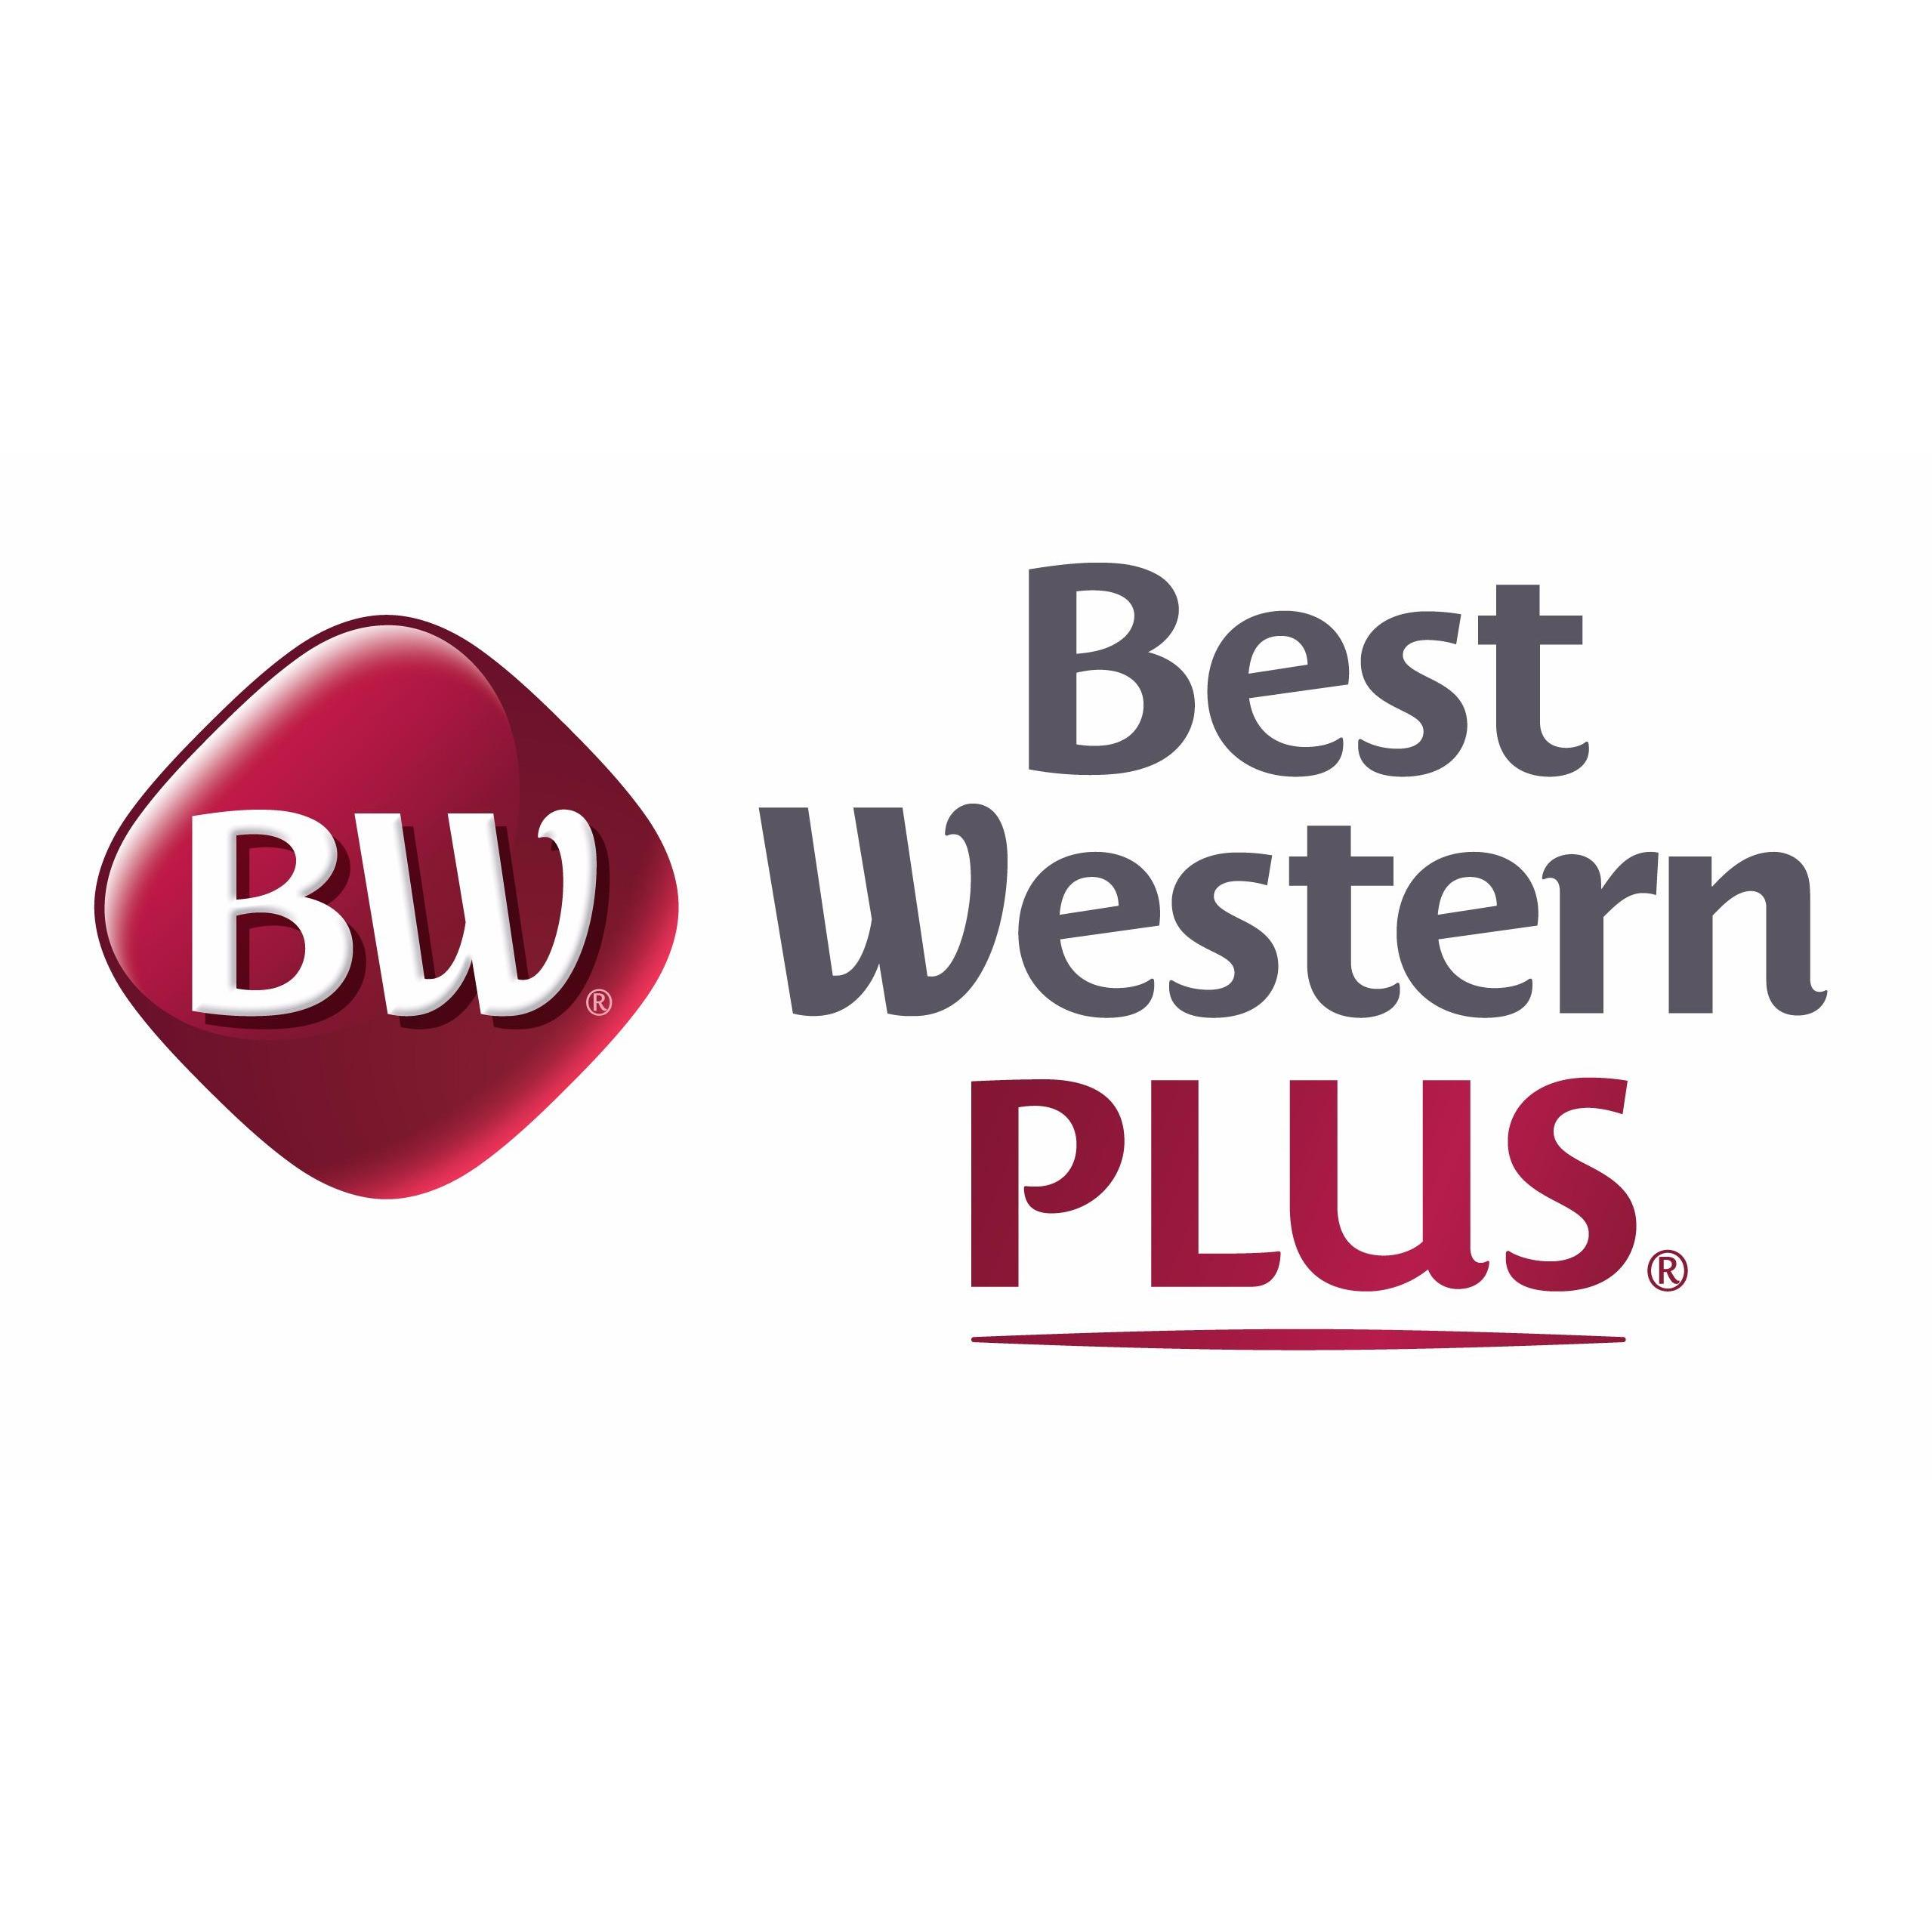 Best Western Plus Sunset Plaza Hotel image 49